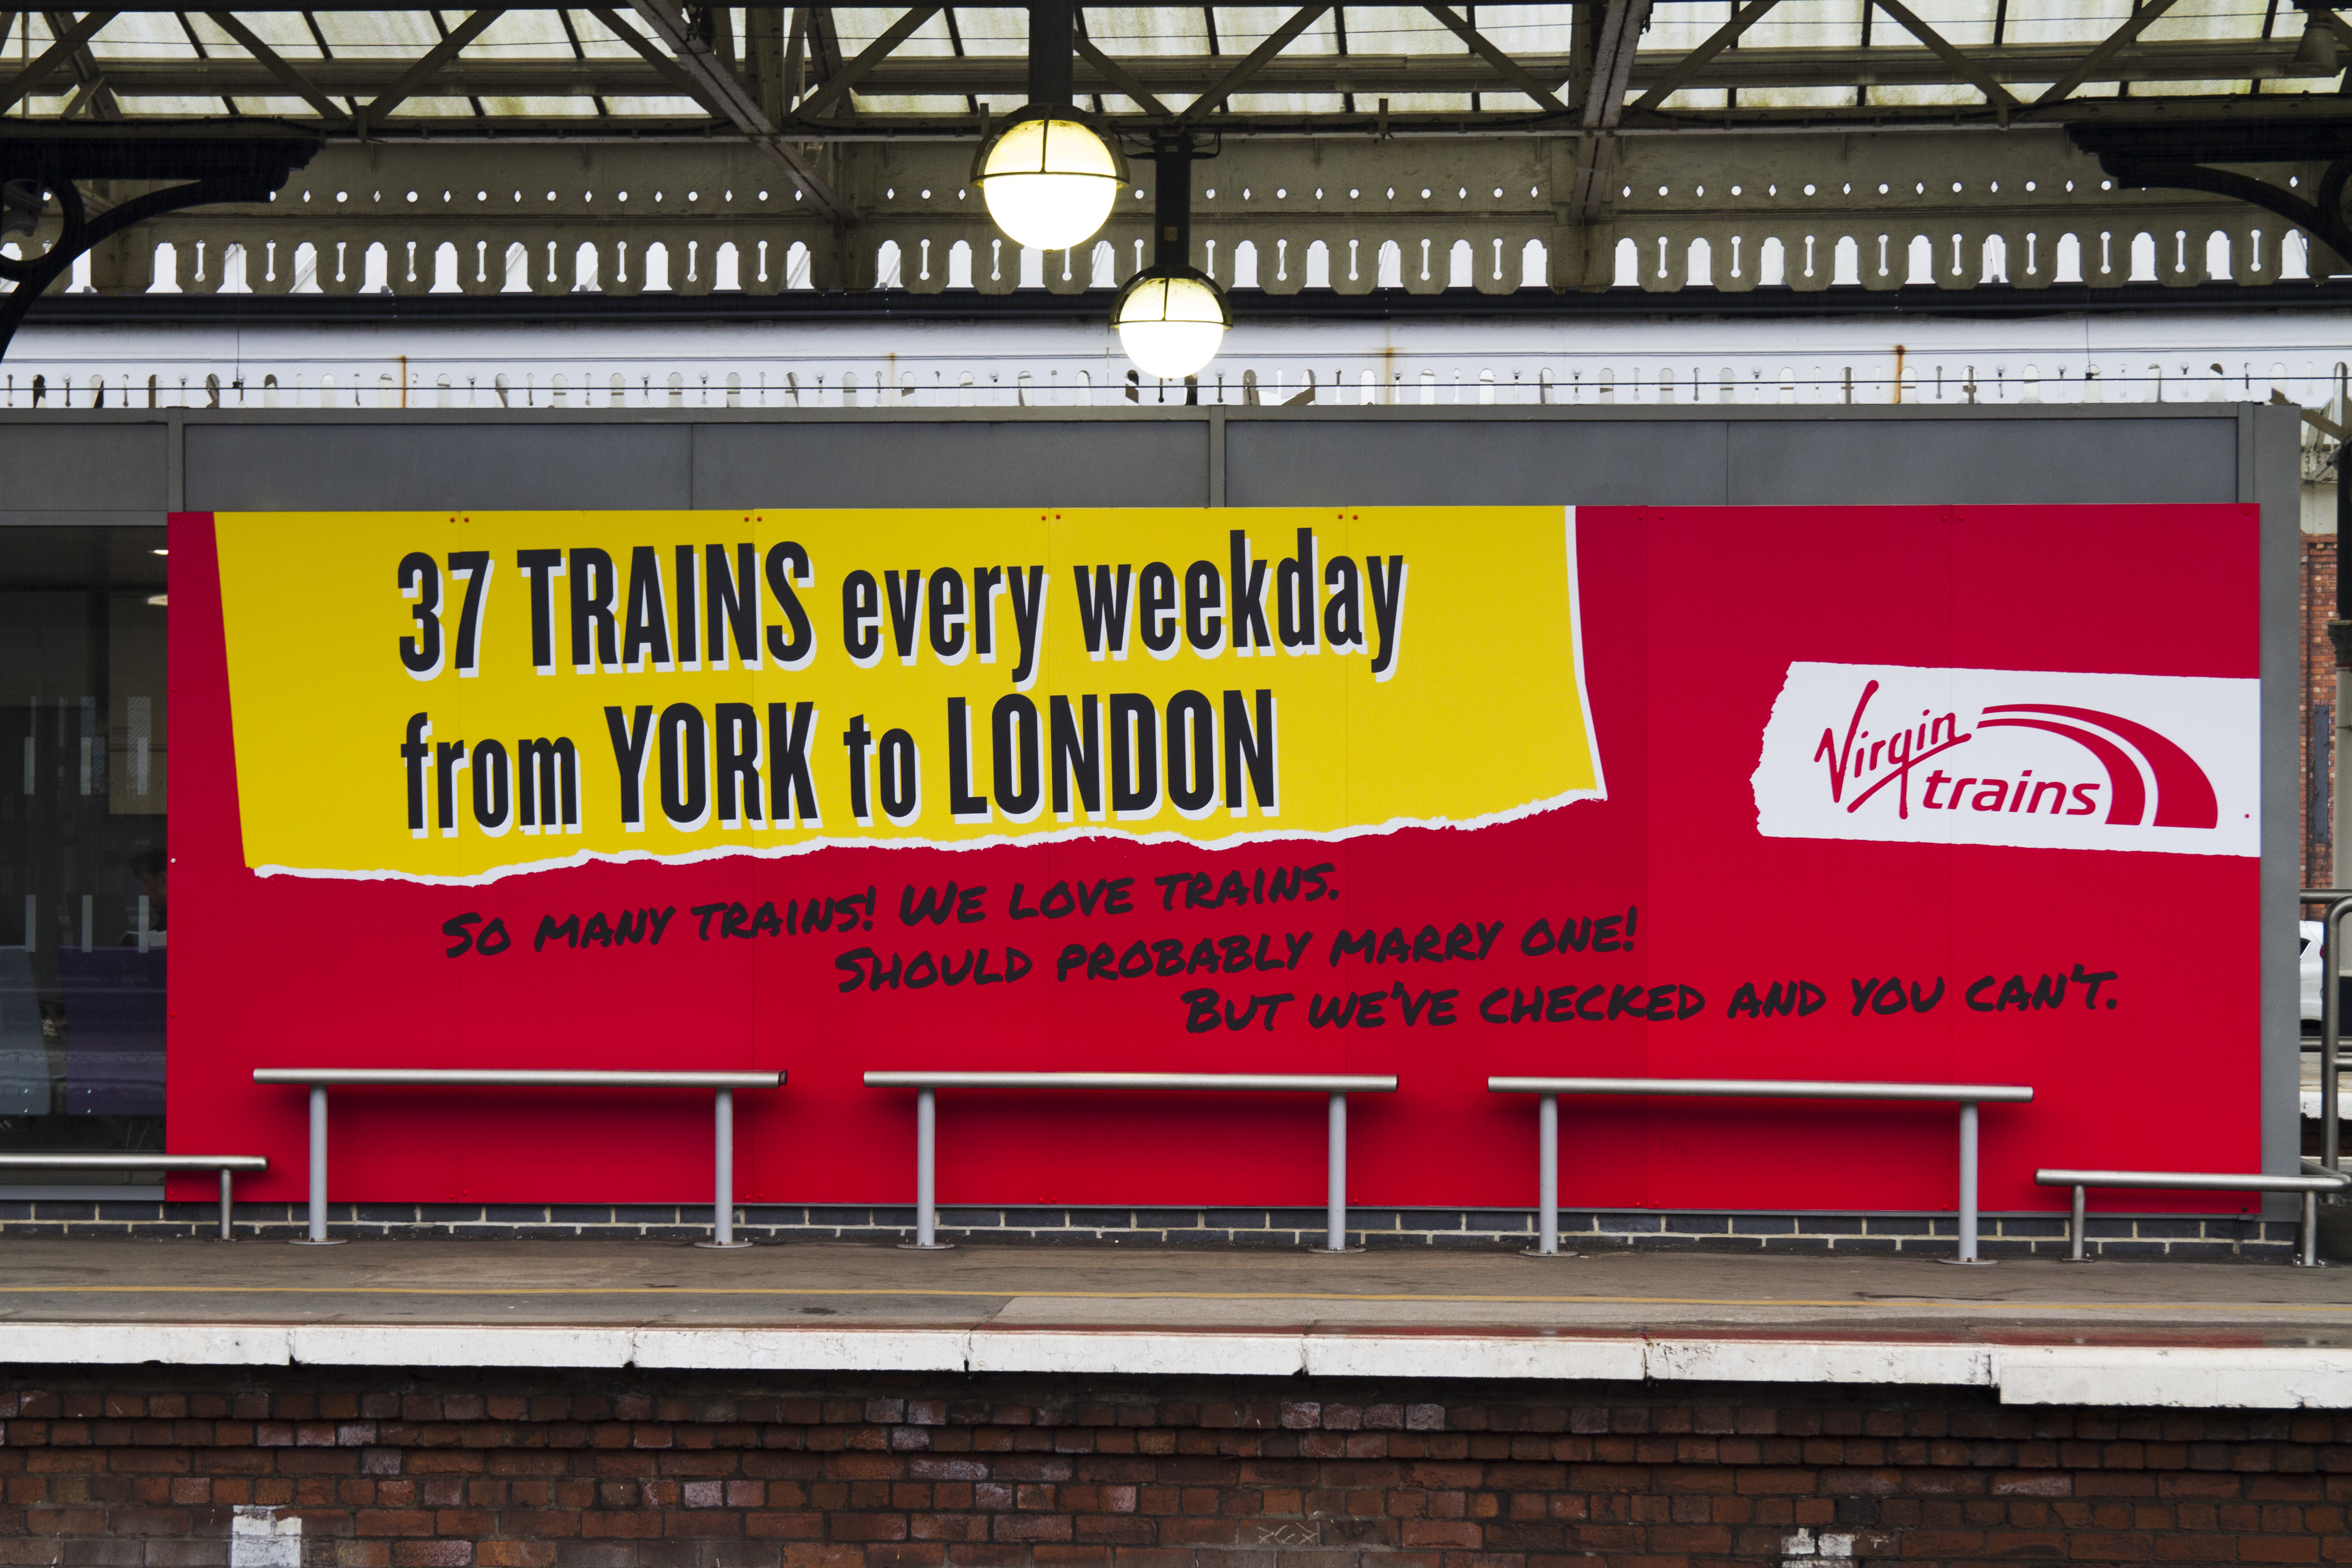 Virgin Trains Poster at York Railway Station